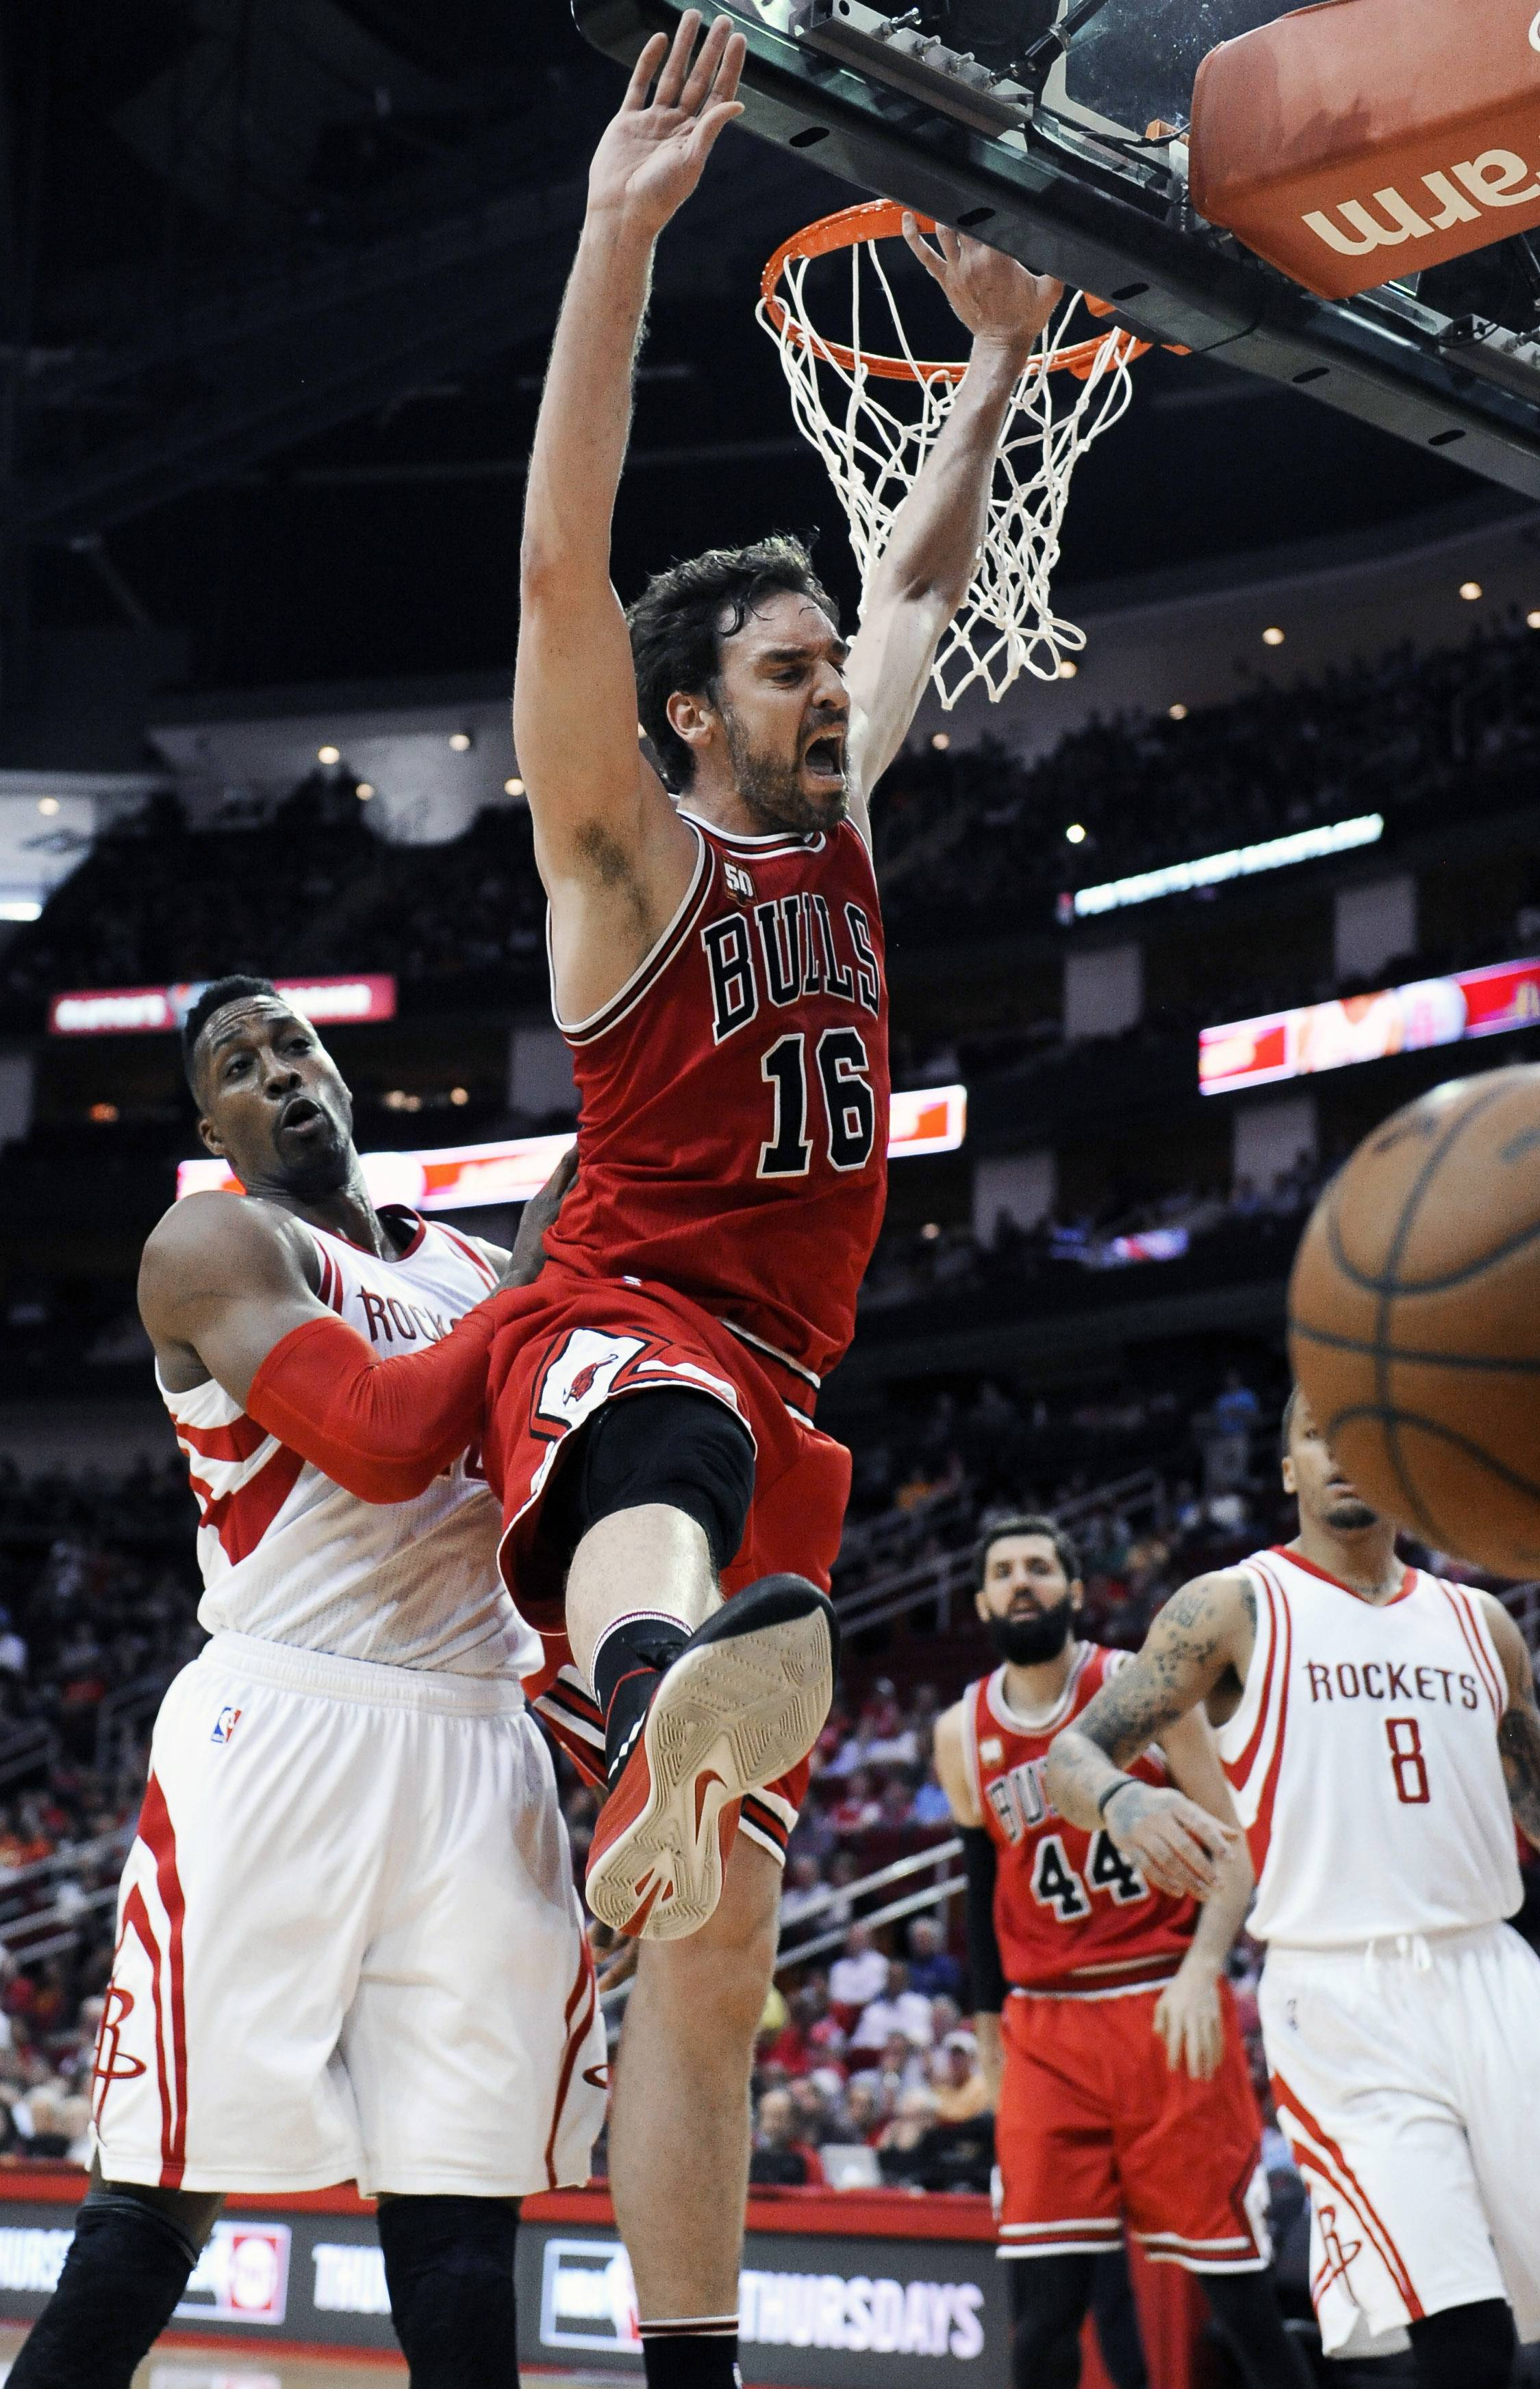 The playoff chase seemed hopeless for the Bulls a few days ago. But consecutive road wins has given them a chance to climb back into serious contention if they can get wins this weekend against Detroit and Milwaukee.